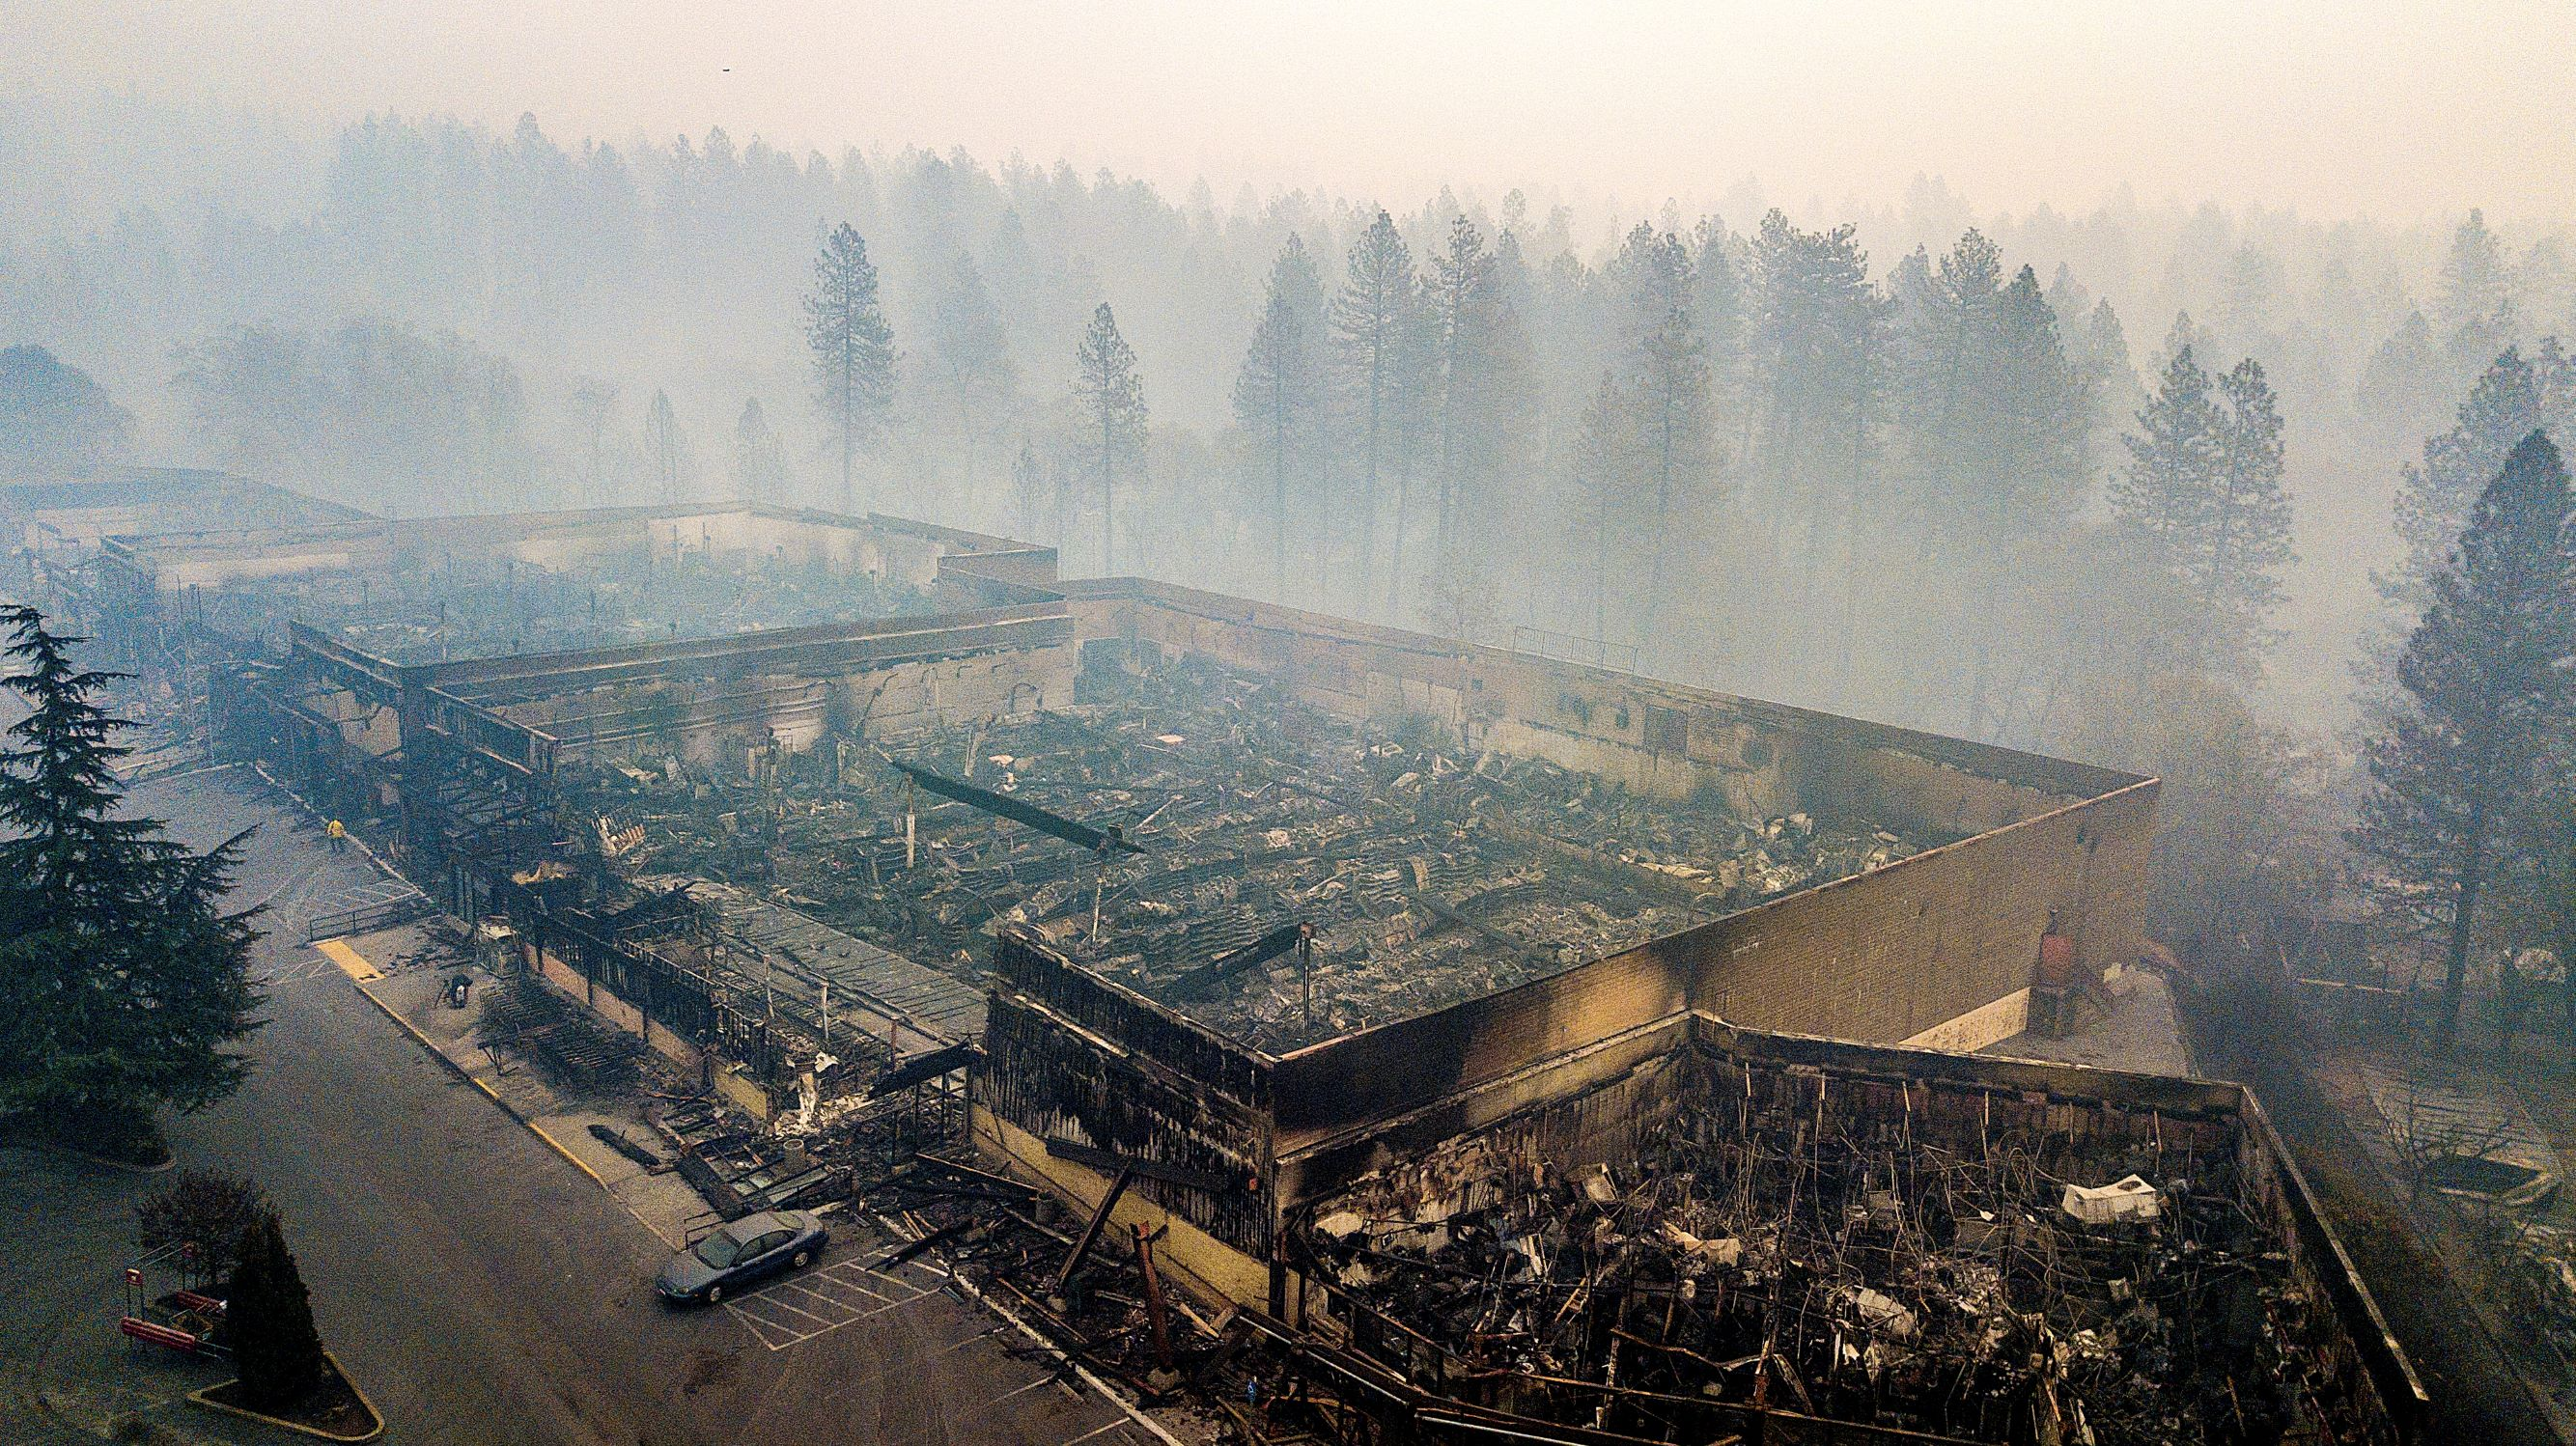 Scorched grocery store